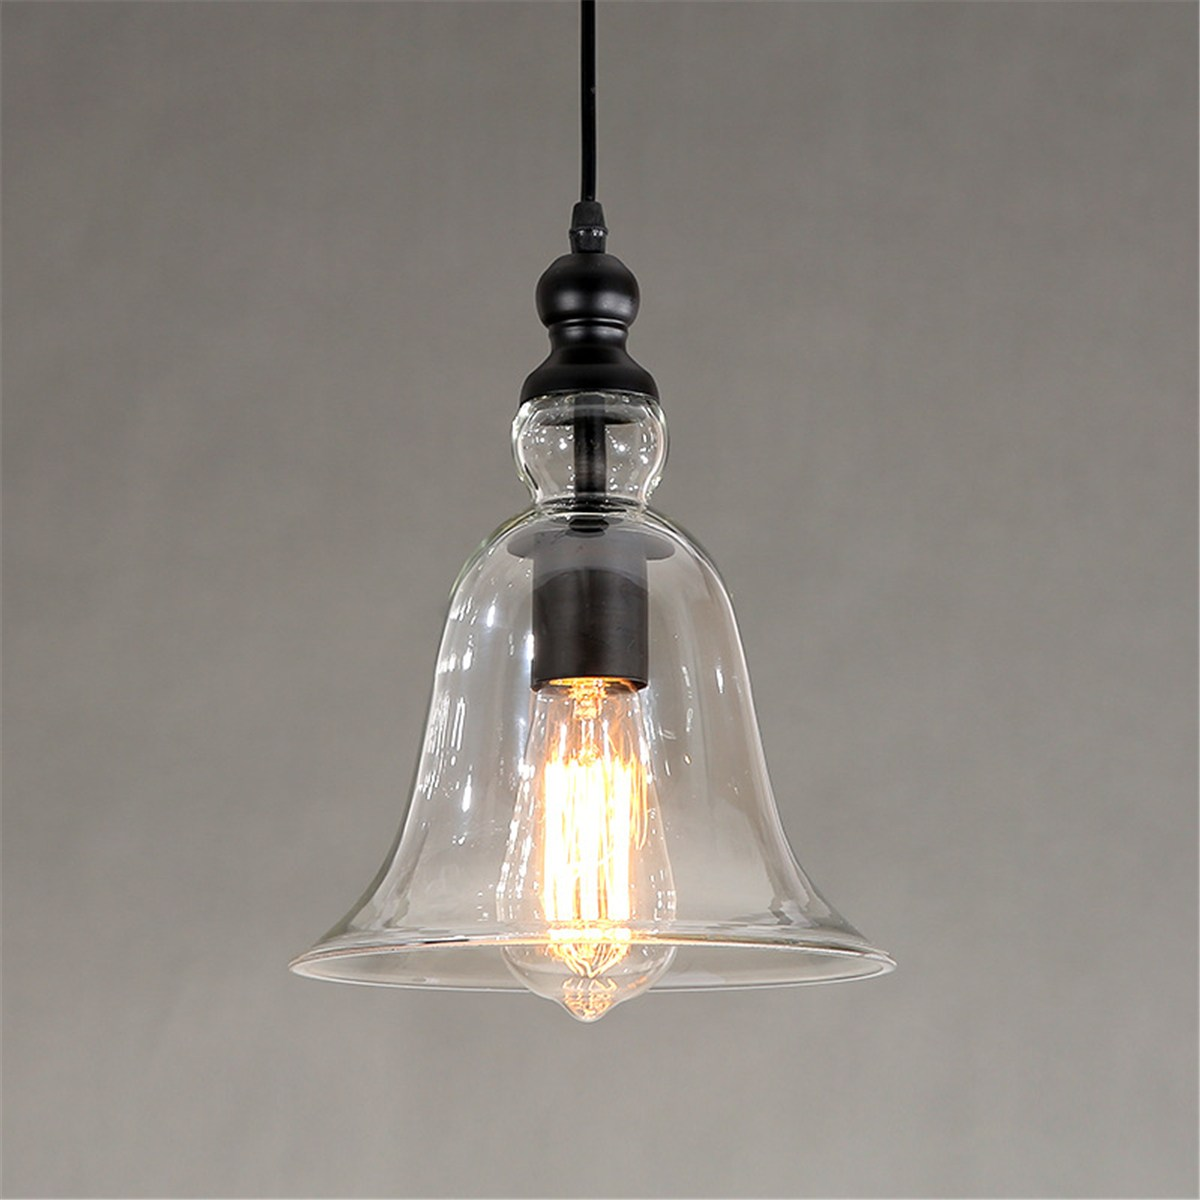 Single Vintage Loft Retro Pendant Light Glass Lampshade Hanging Lamp Fixtures Restaurant Bar Coffee Shop Home Decoration